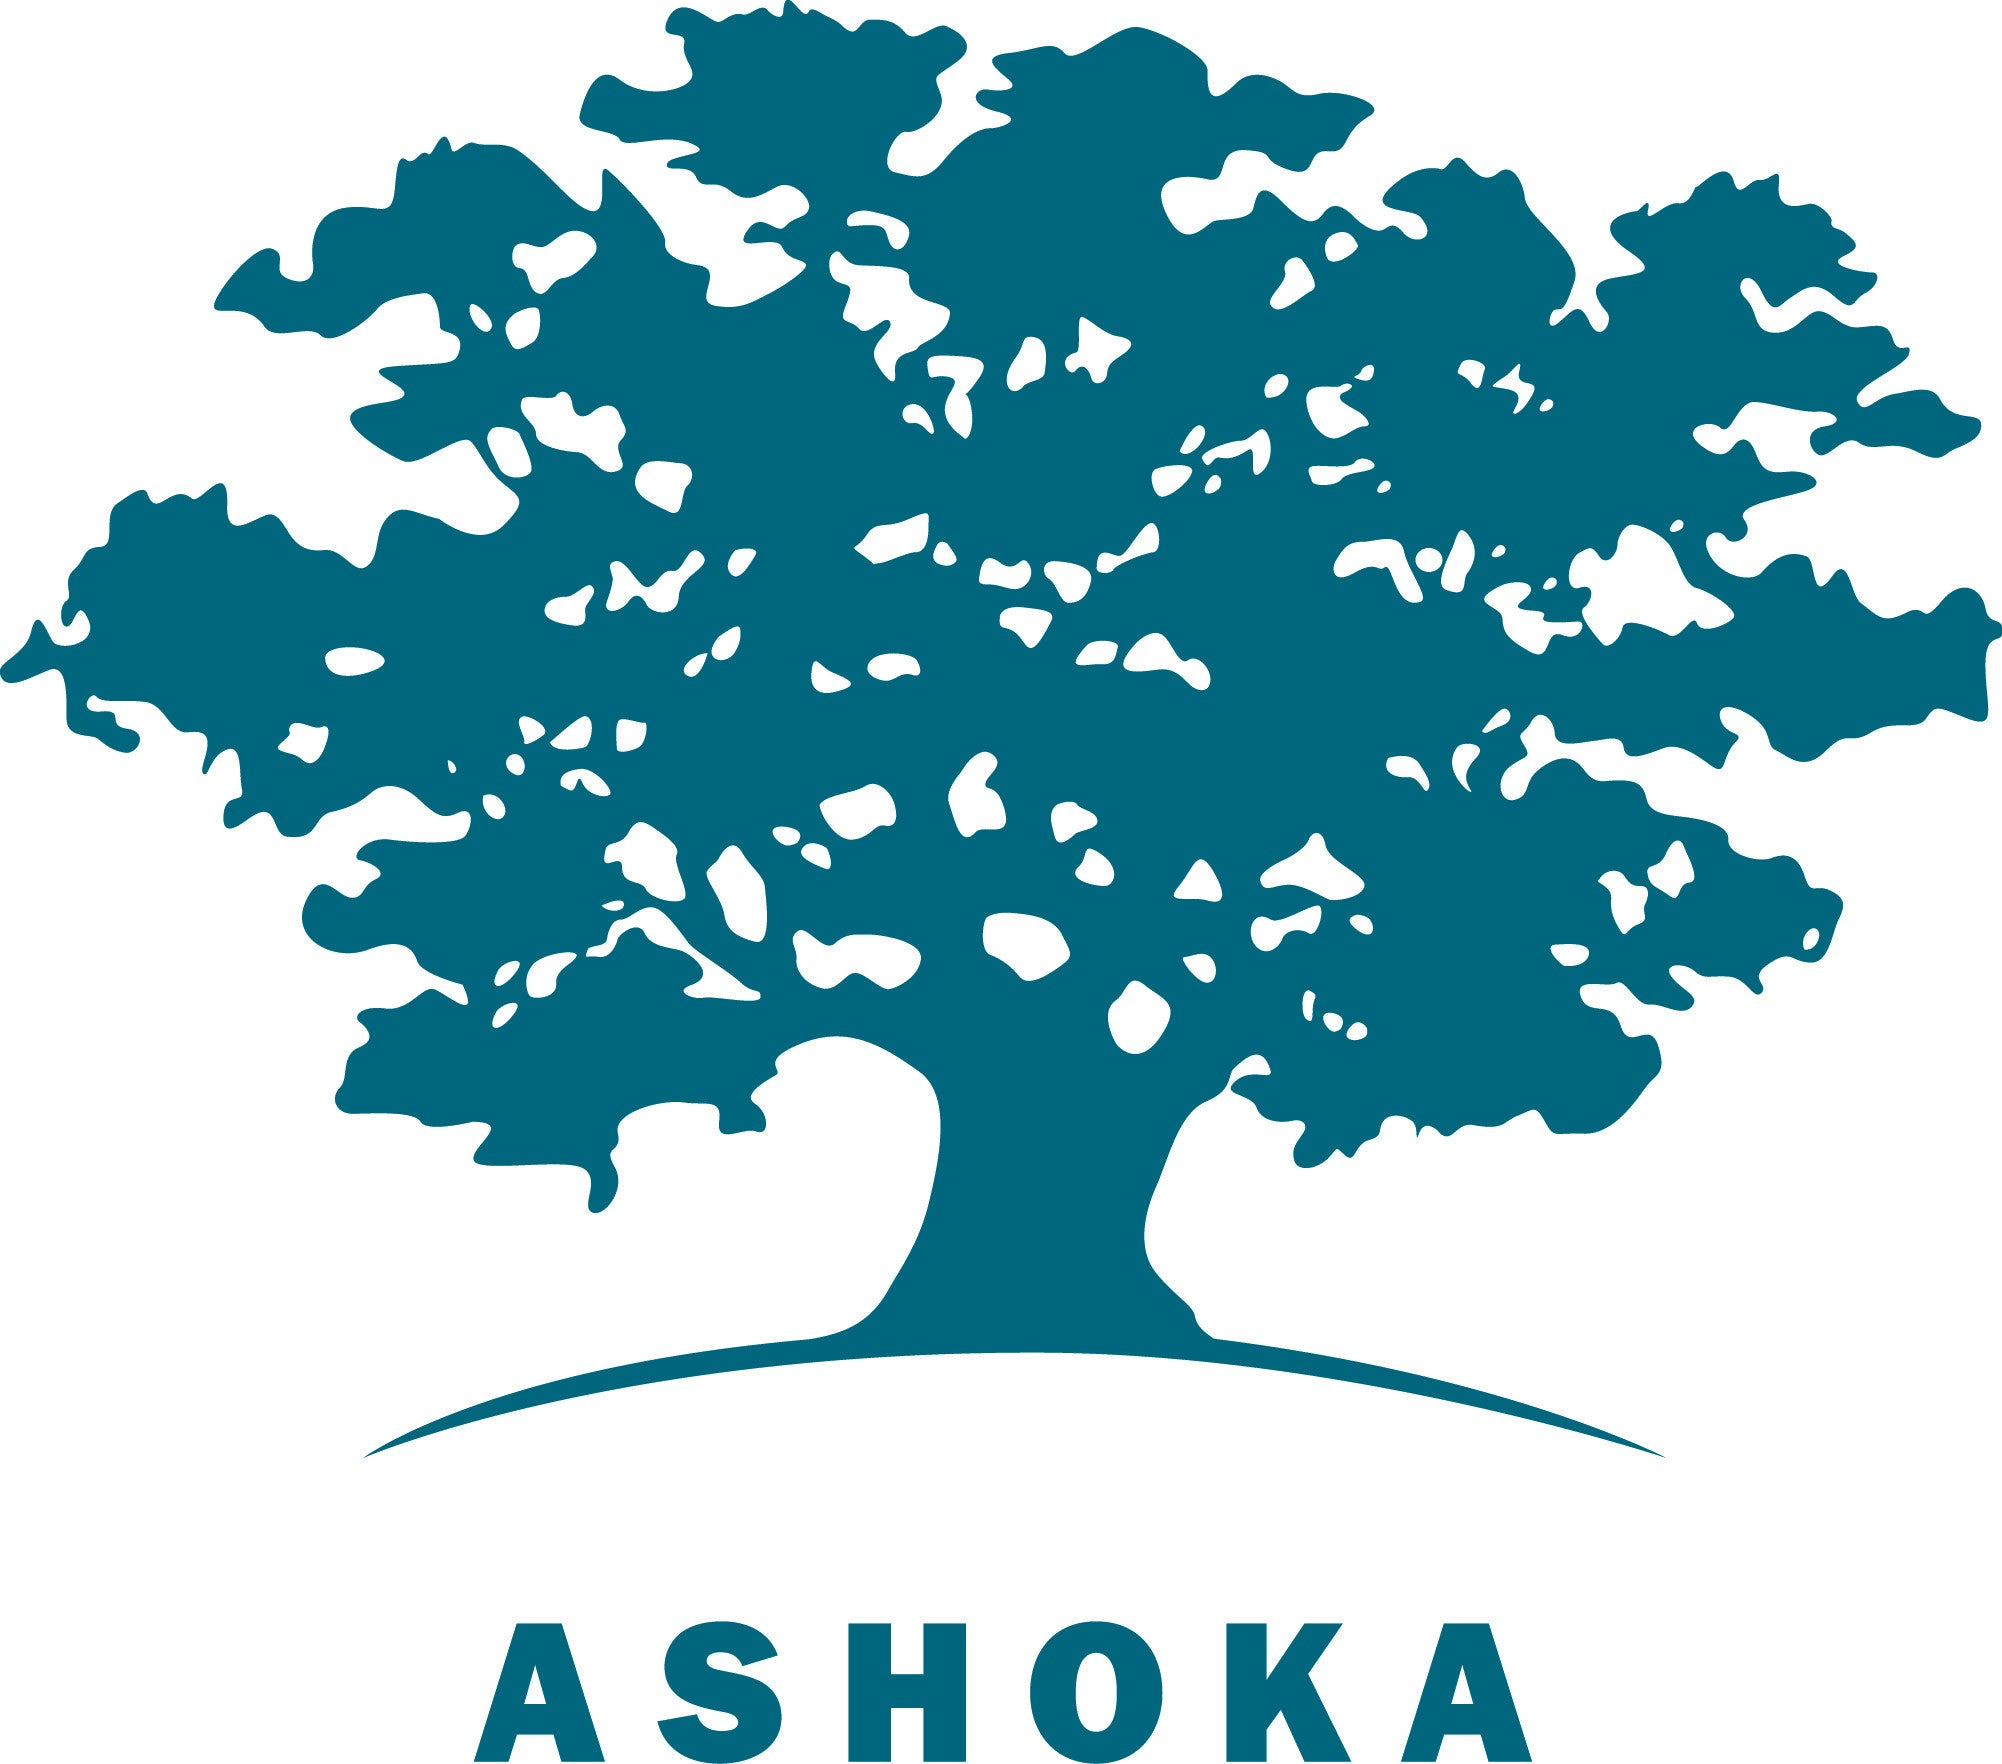 Ashoka: Innovators for the Public logo